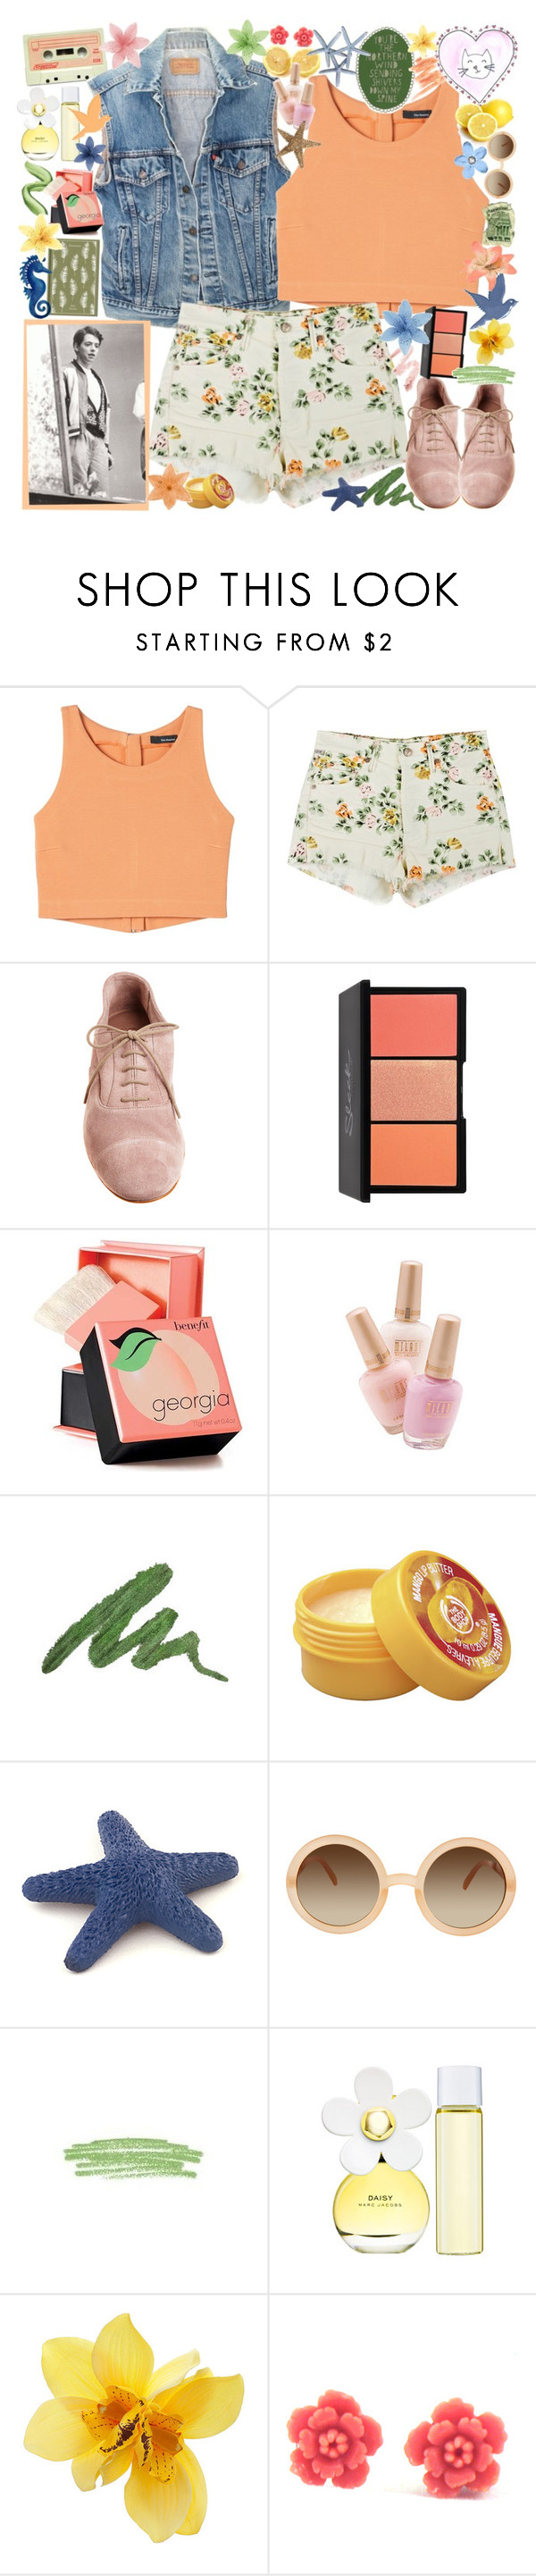 """""""under pressure"""" by sydneyis-swaggalici0us ❤ liked on Polyvore featuring Citizens of Humanity, CO-OP Barneys New York, tarte, Debenhams, Penguin Group, Urban Decay, The Body Shop, Aerie, ASOS and New Look"""